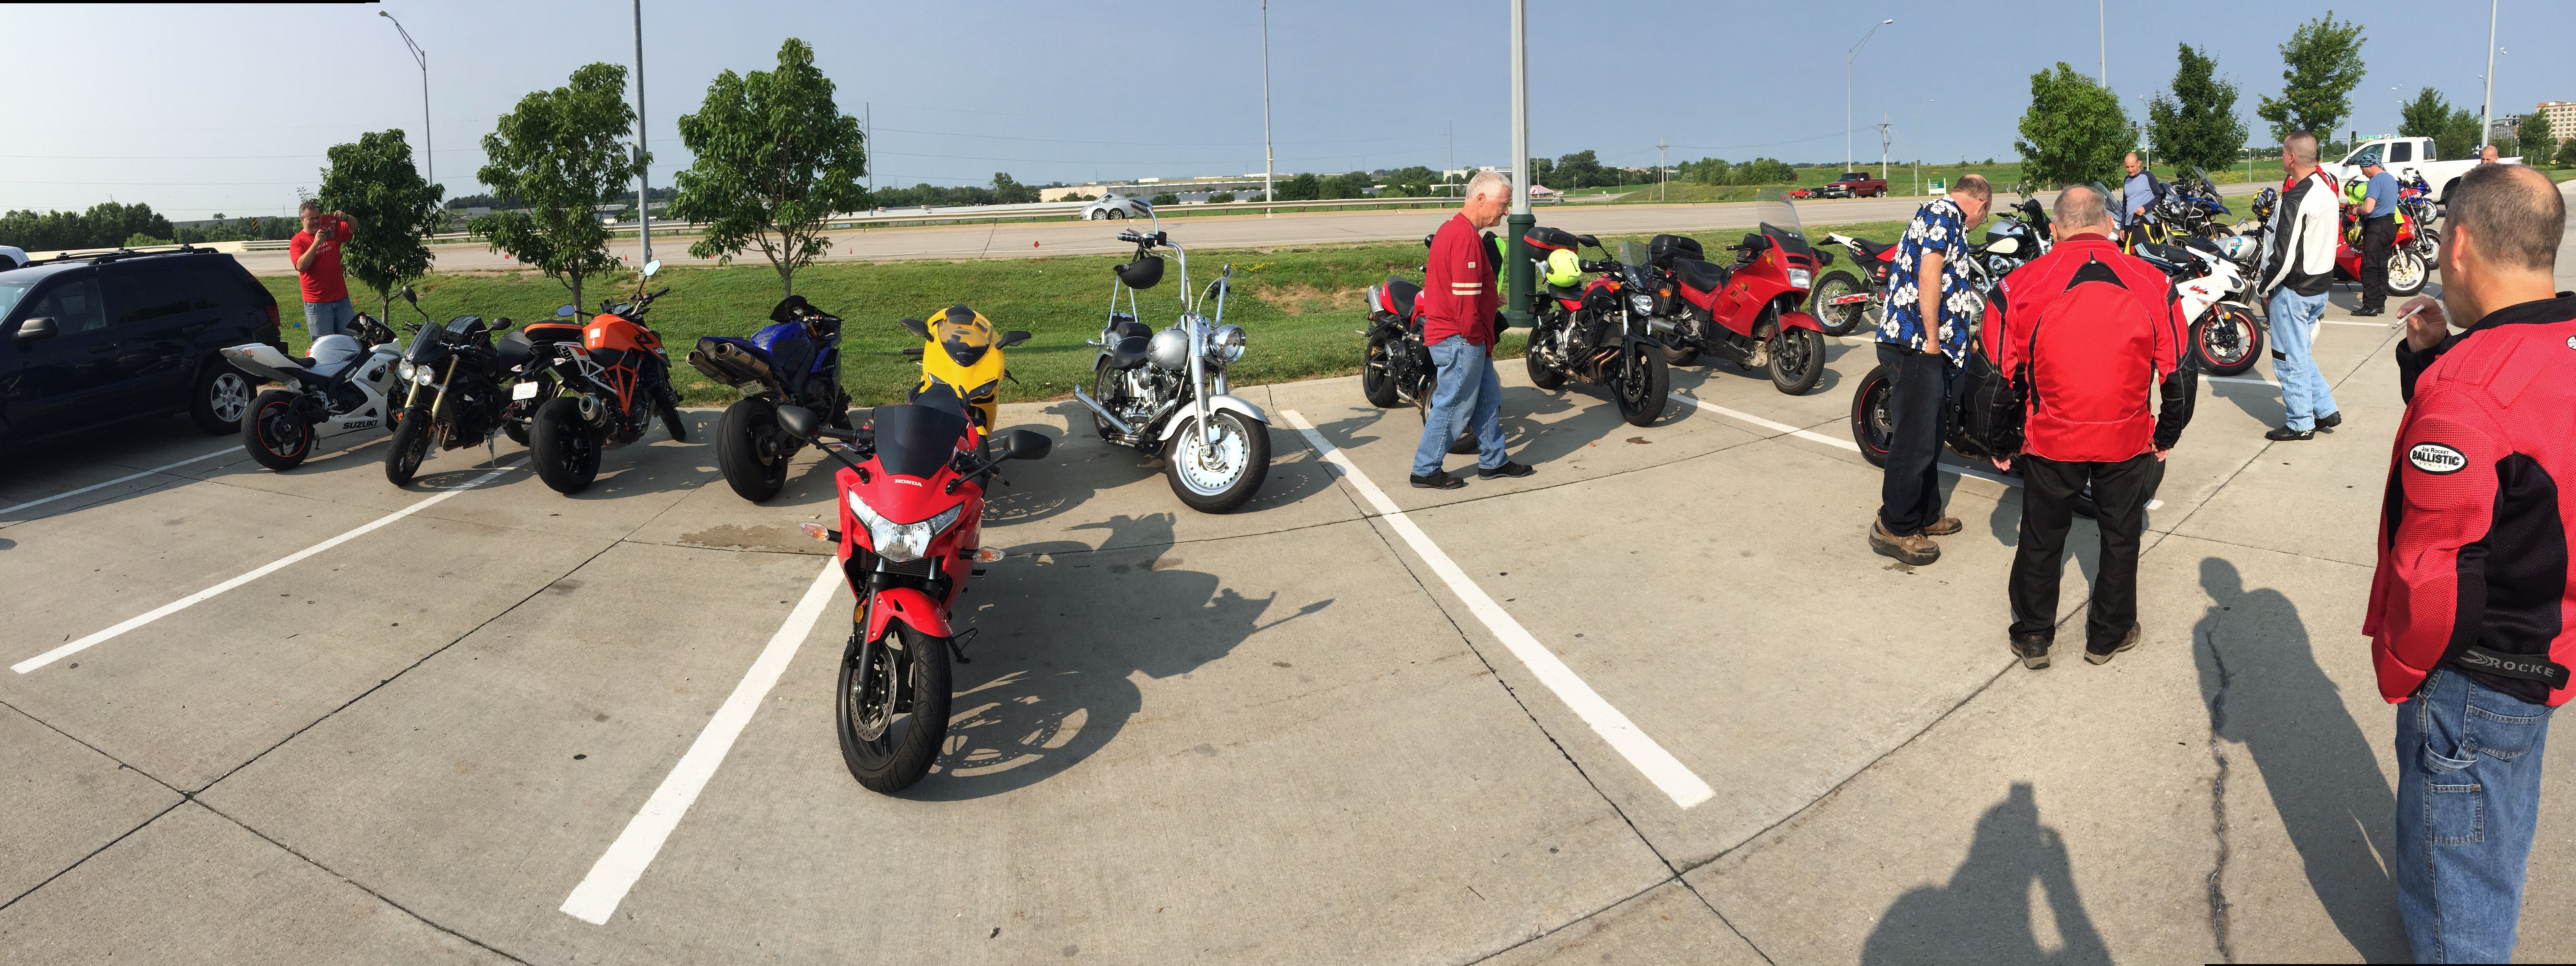 Breakfast at 8:30 AM at - Omaha Sportbike Riders (Omaha, NE) - Meetup